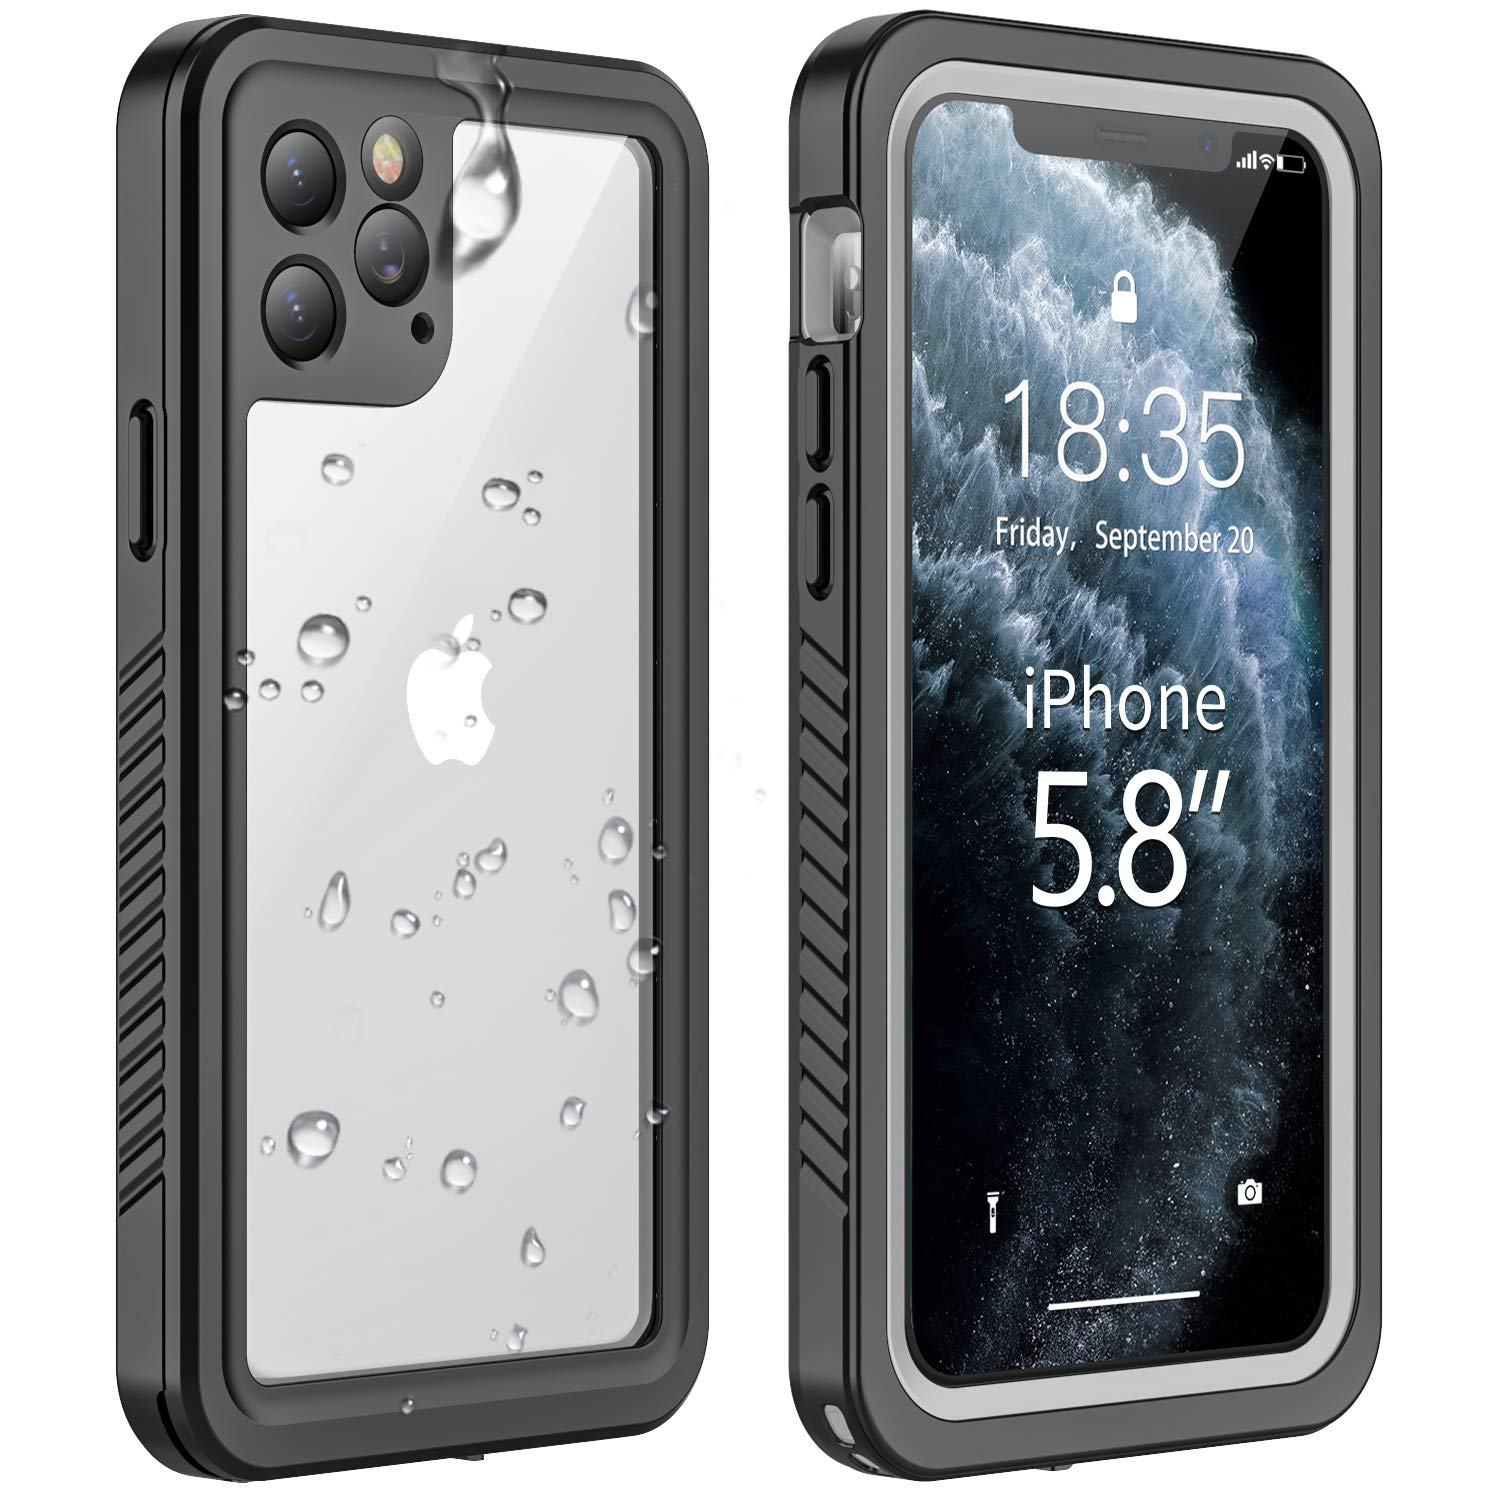 Vapesoon iPhone 11 Pro Waterproof Case, Built-in Screen Protector 360 Full-Body Protection Clear Call Quality Heavy Duty Waterproof Shockproof Cover Case for iPhone 11 Pro 2019(5.8 Inch)-Black/Clea